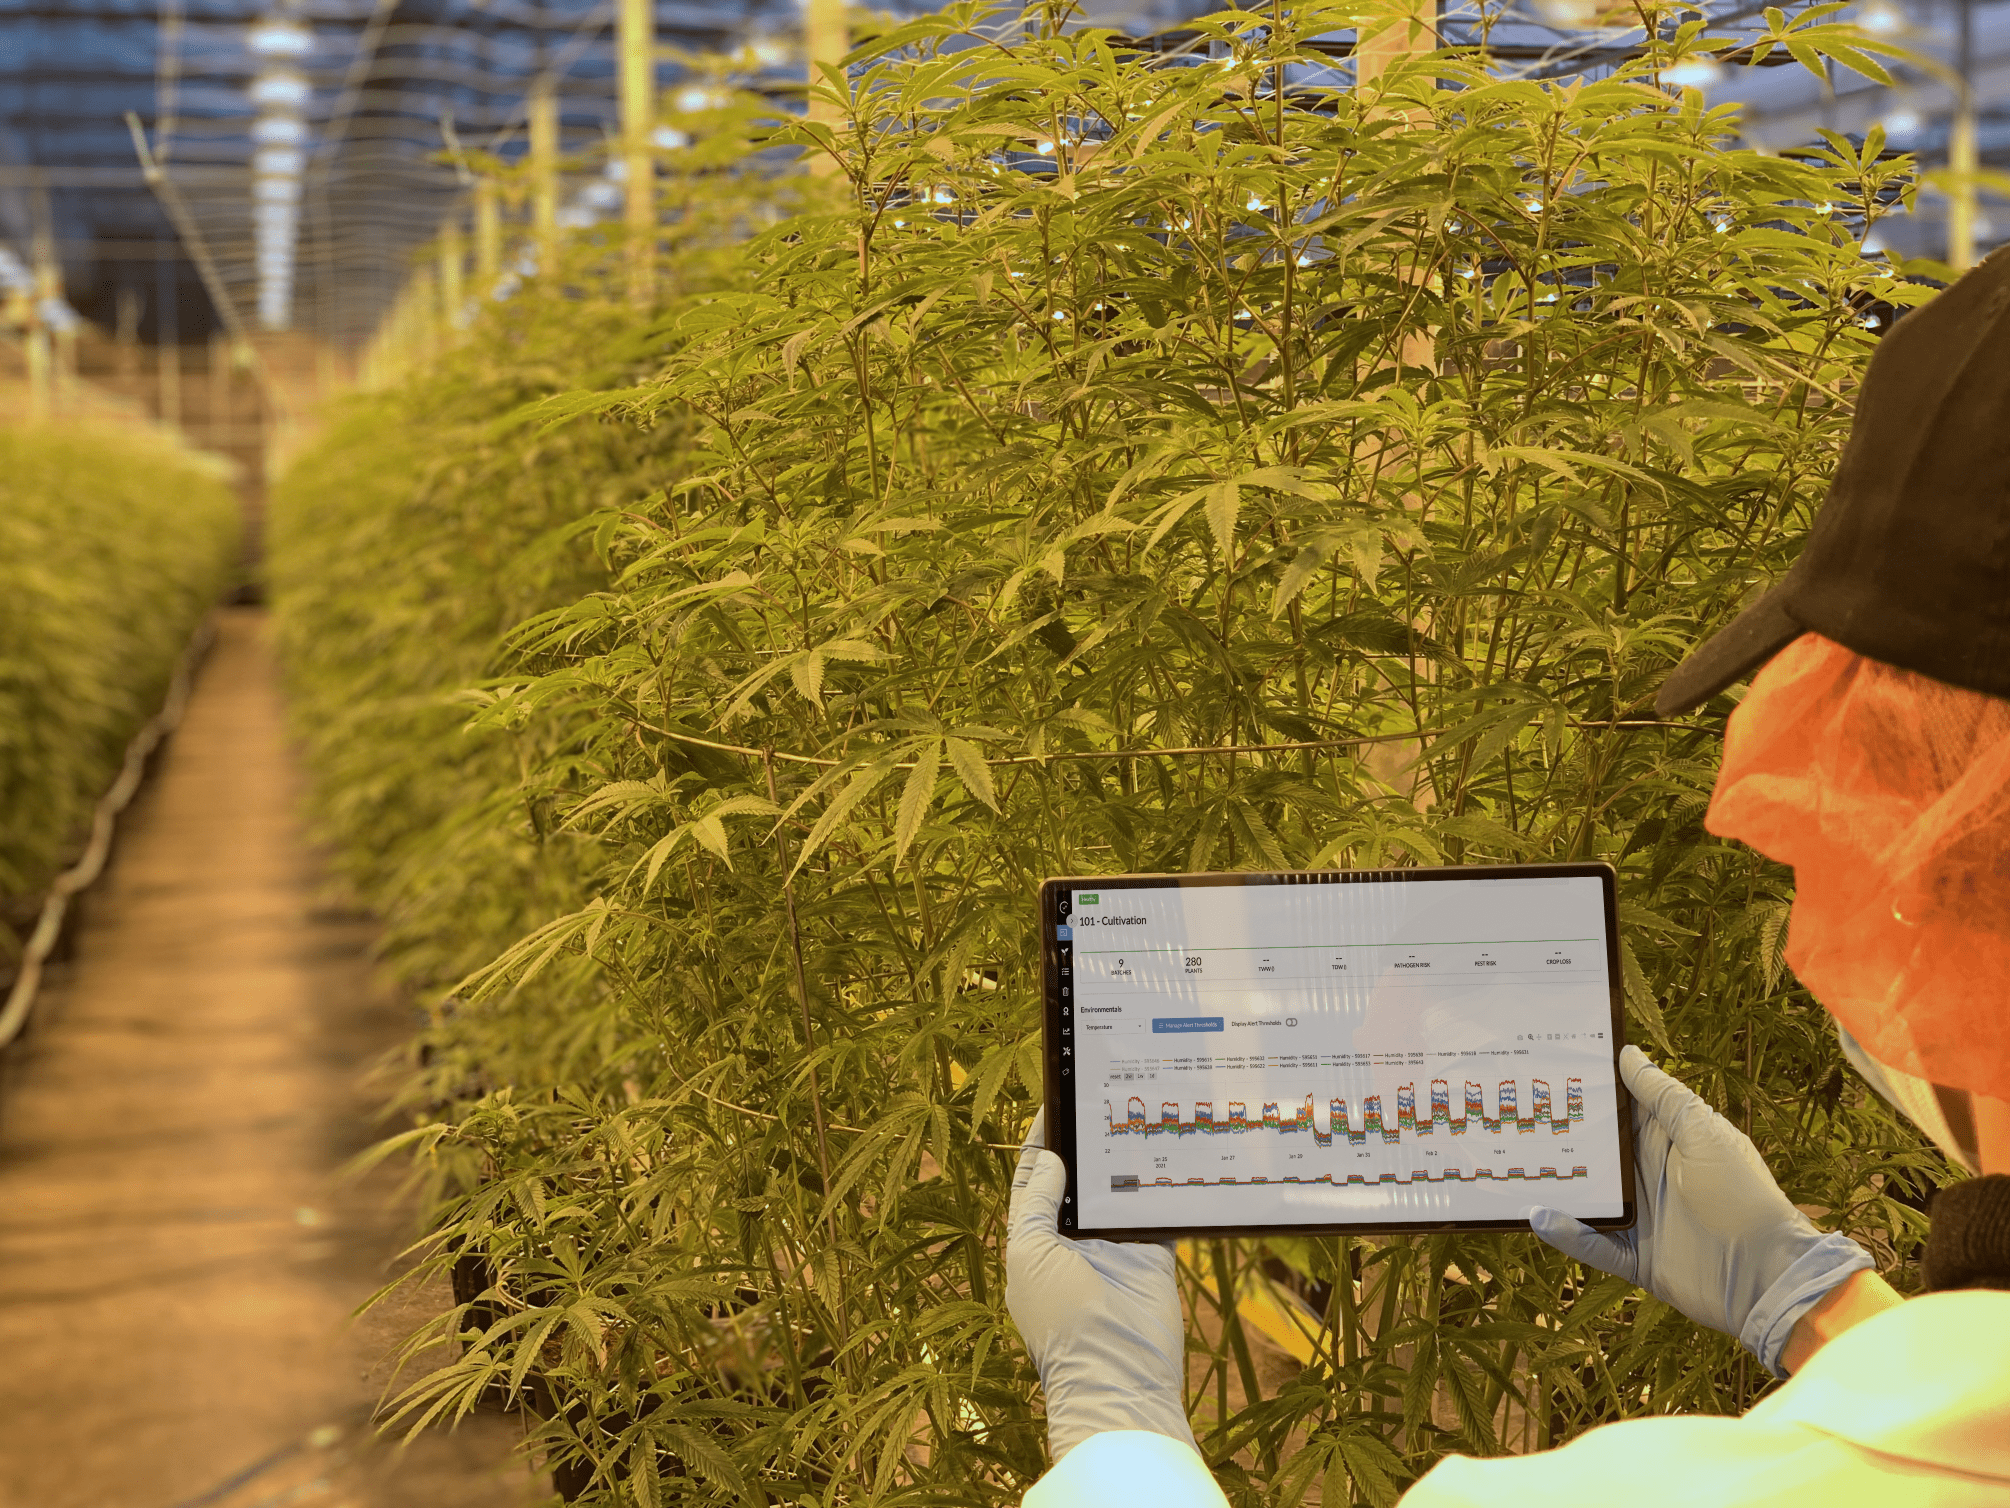 How one software firm is helping the Canadian cannabis industry save trees - Elevated Signals in use at Tantalus Labs